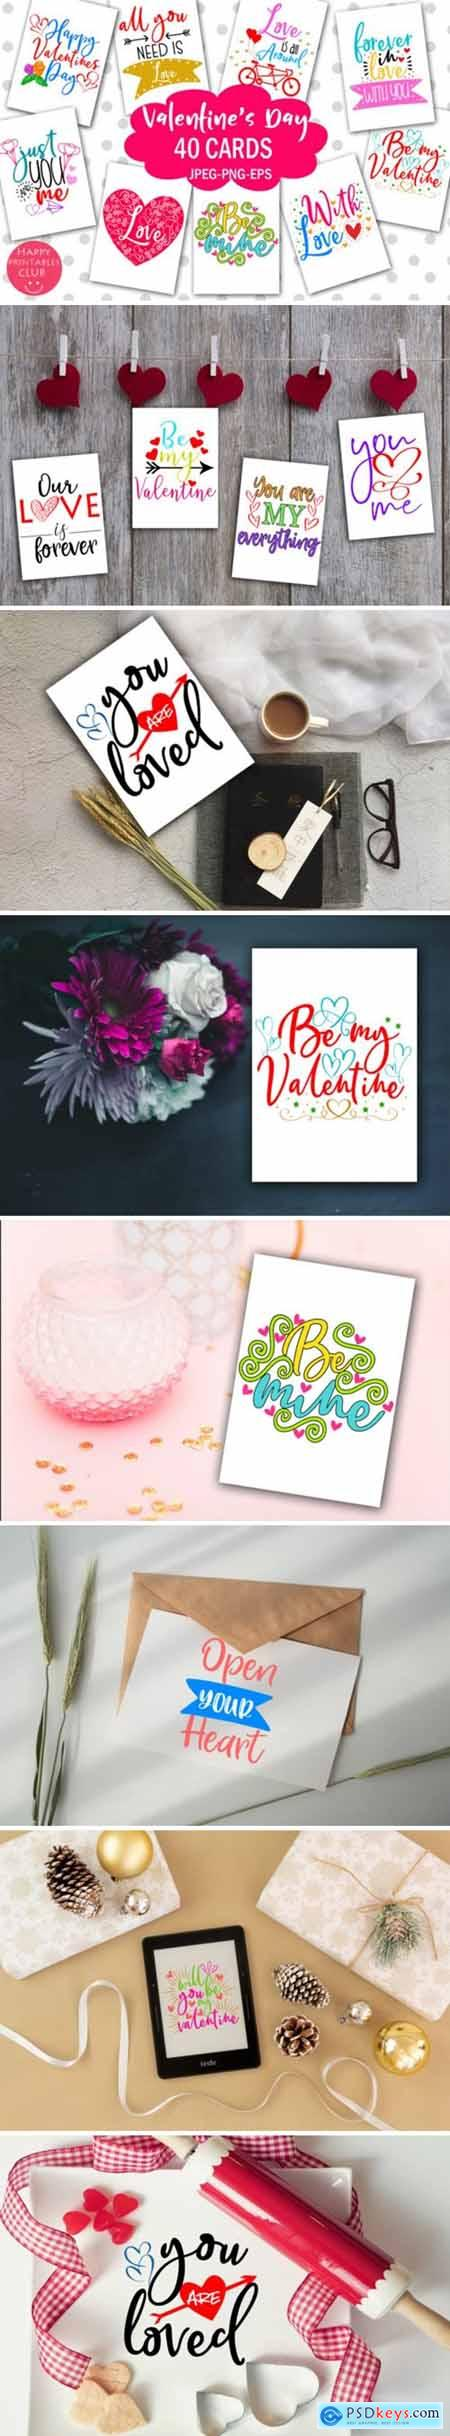 Cute Valentines Day Cards-Valentines 2149367